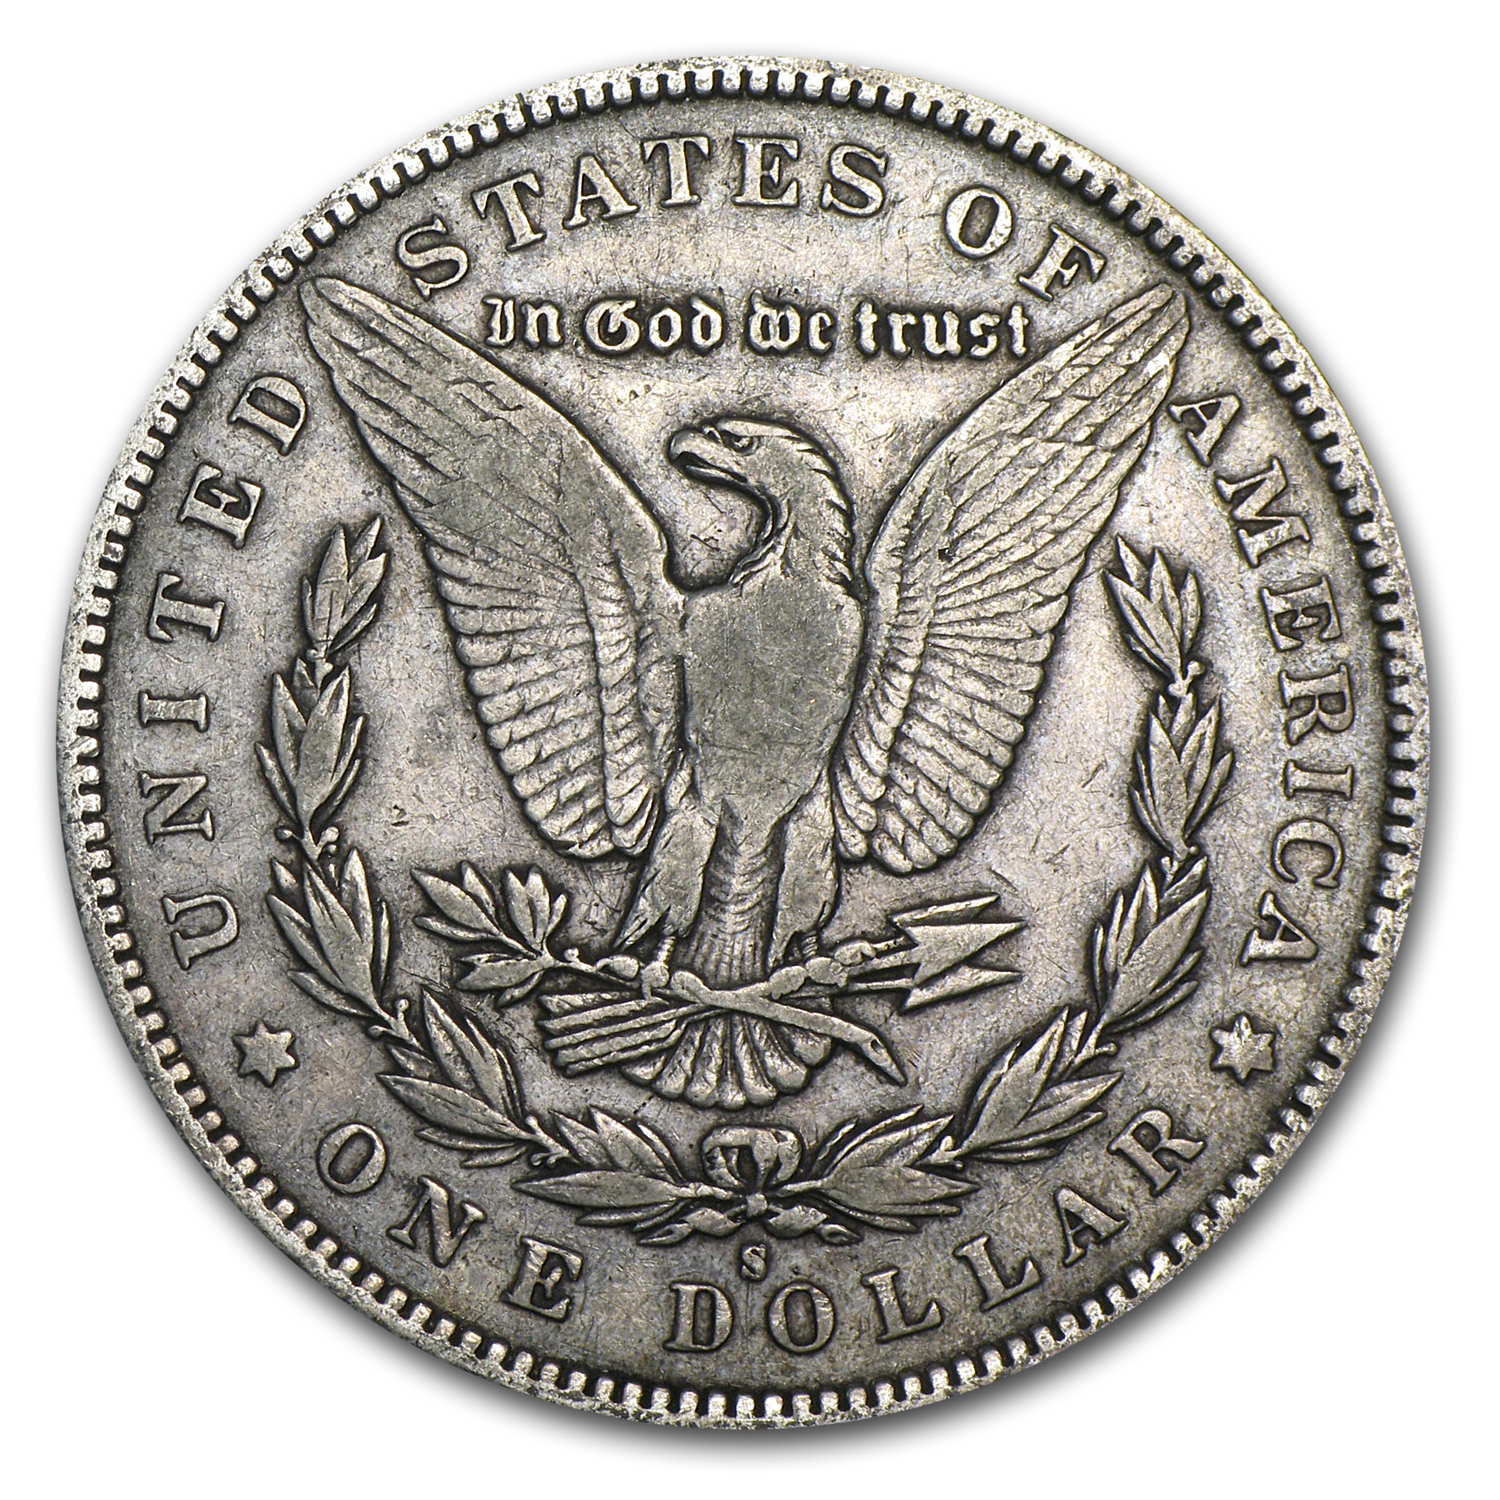 1892-S Morgan Dollar - Very Fine-35